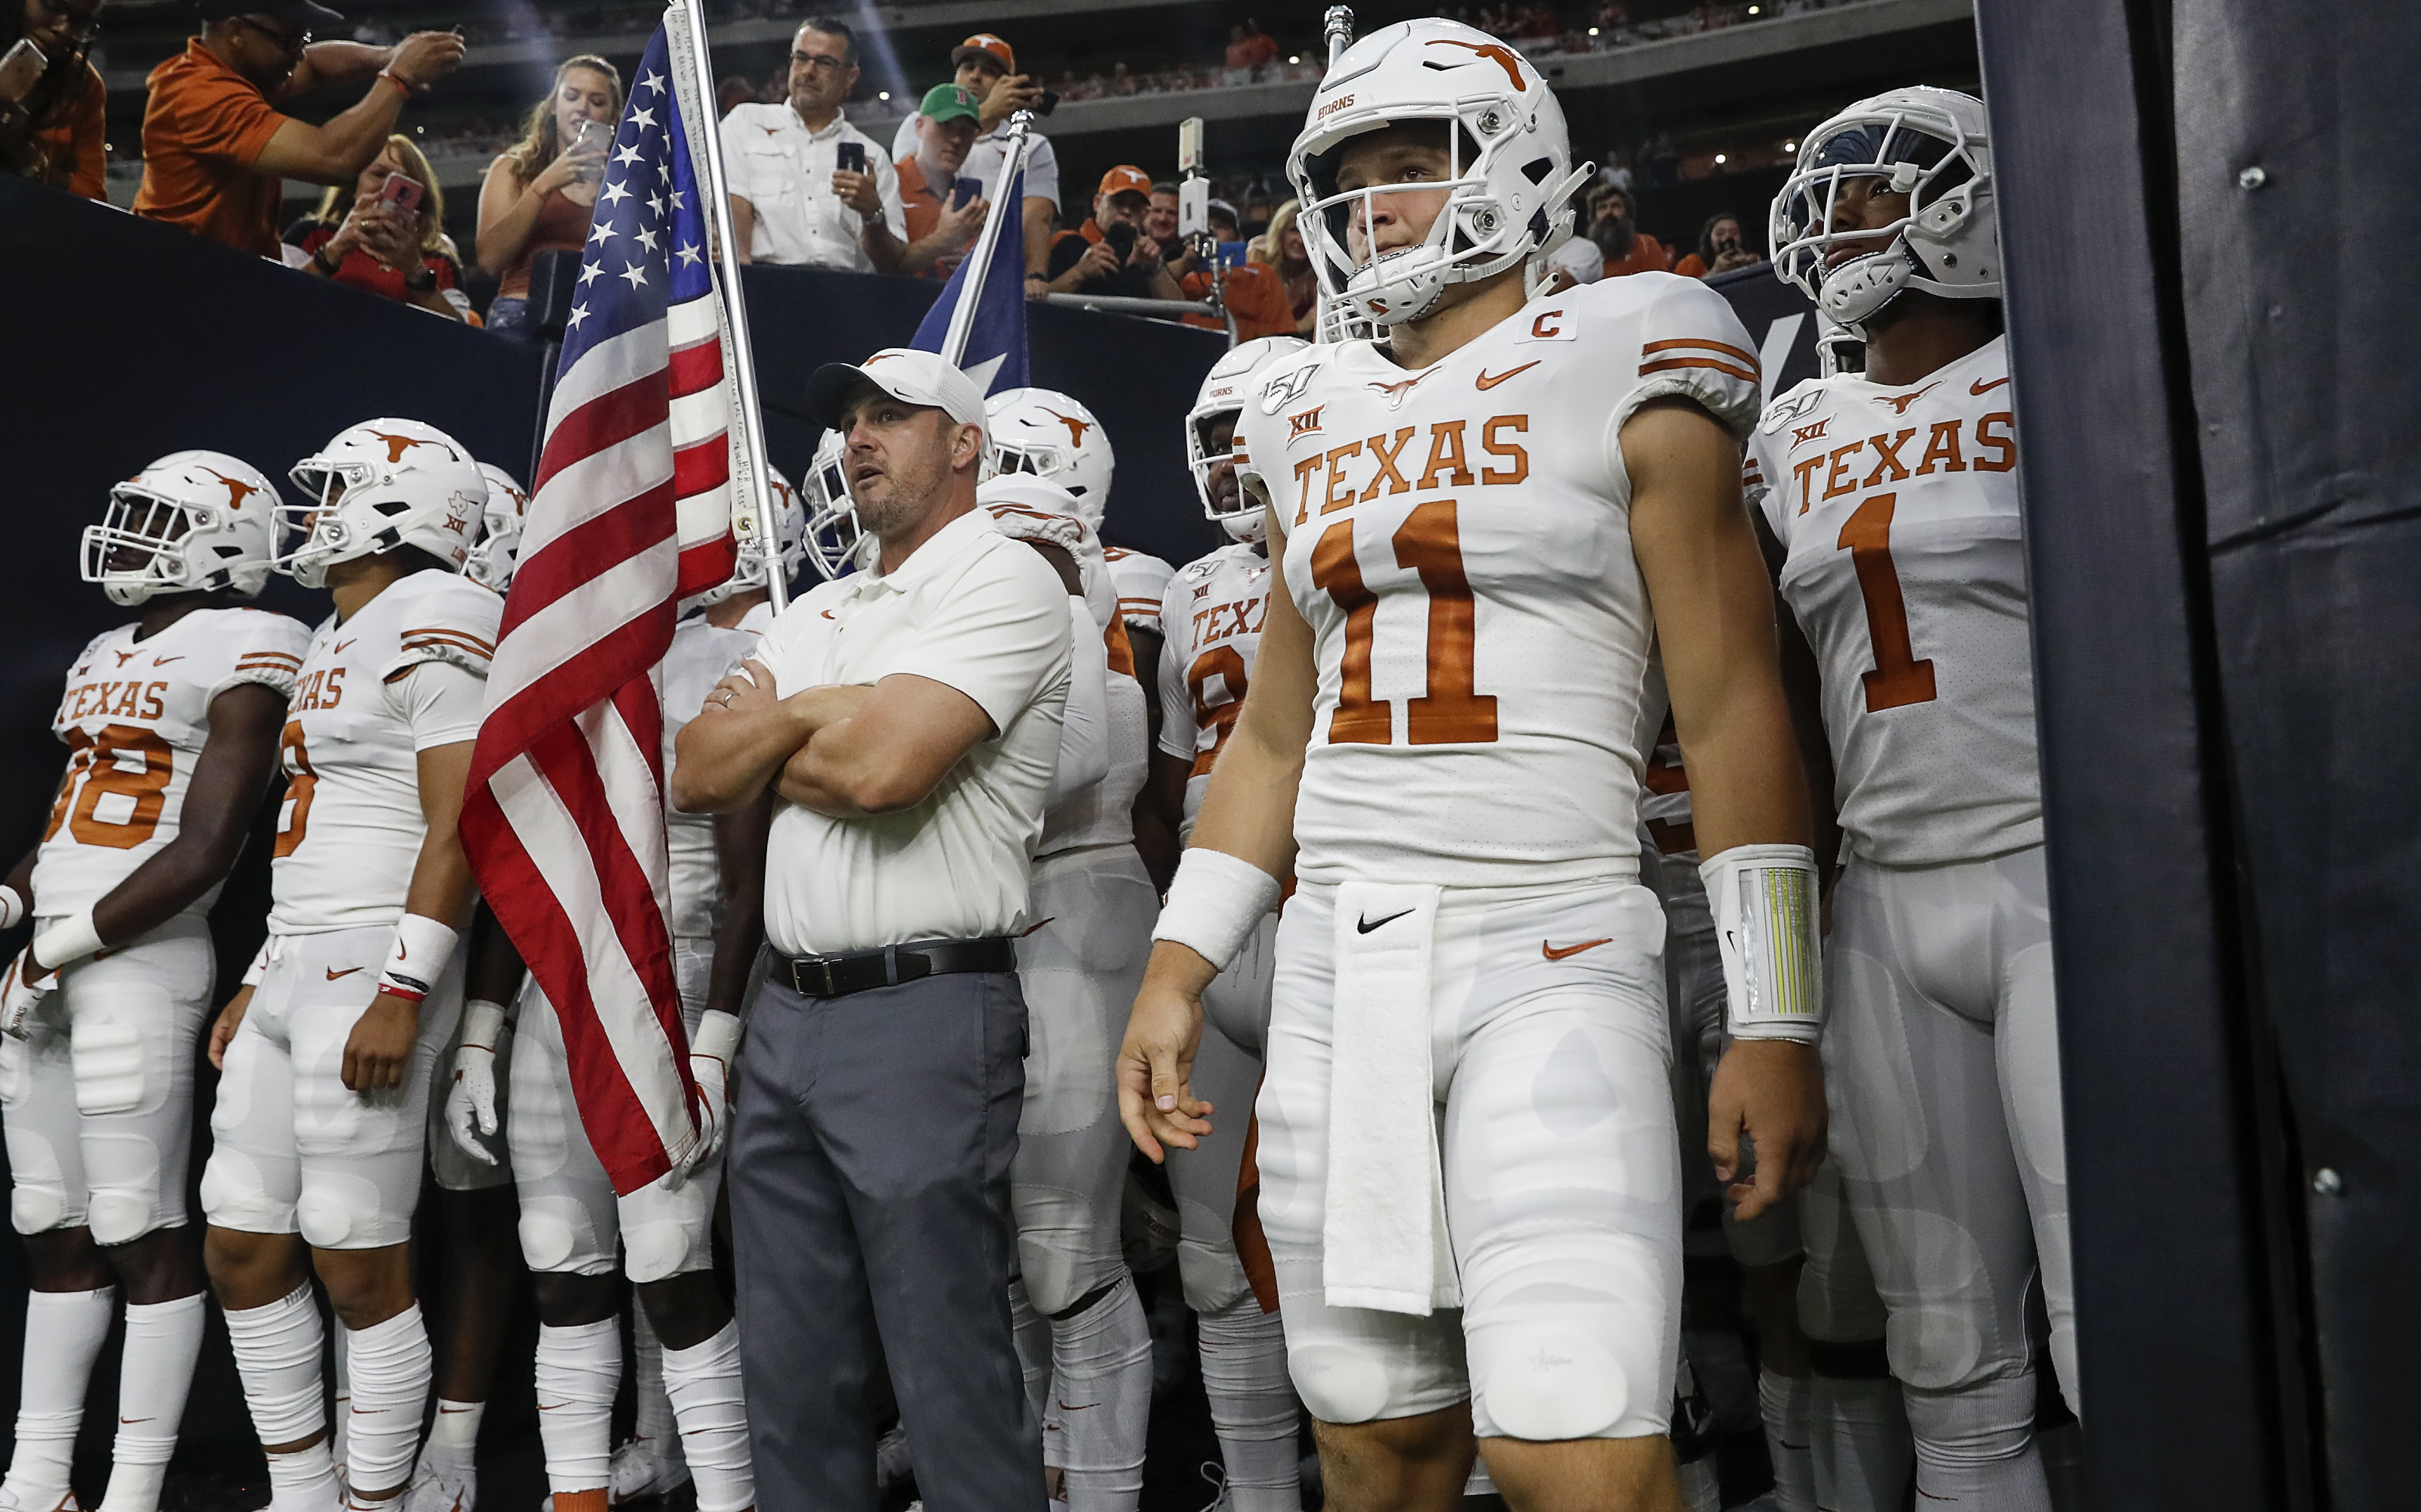 Texas Football: 5 key 2021 recruits Longhorns can realistically land